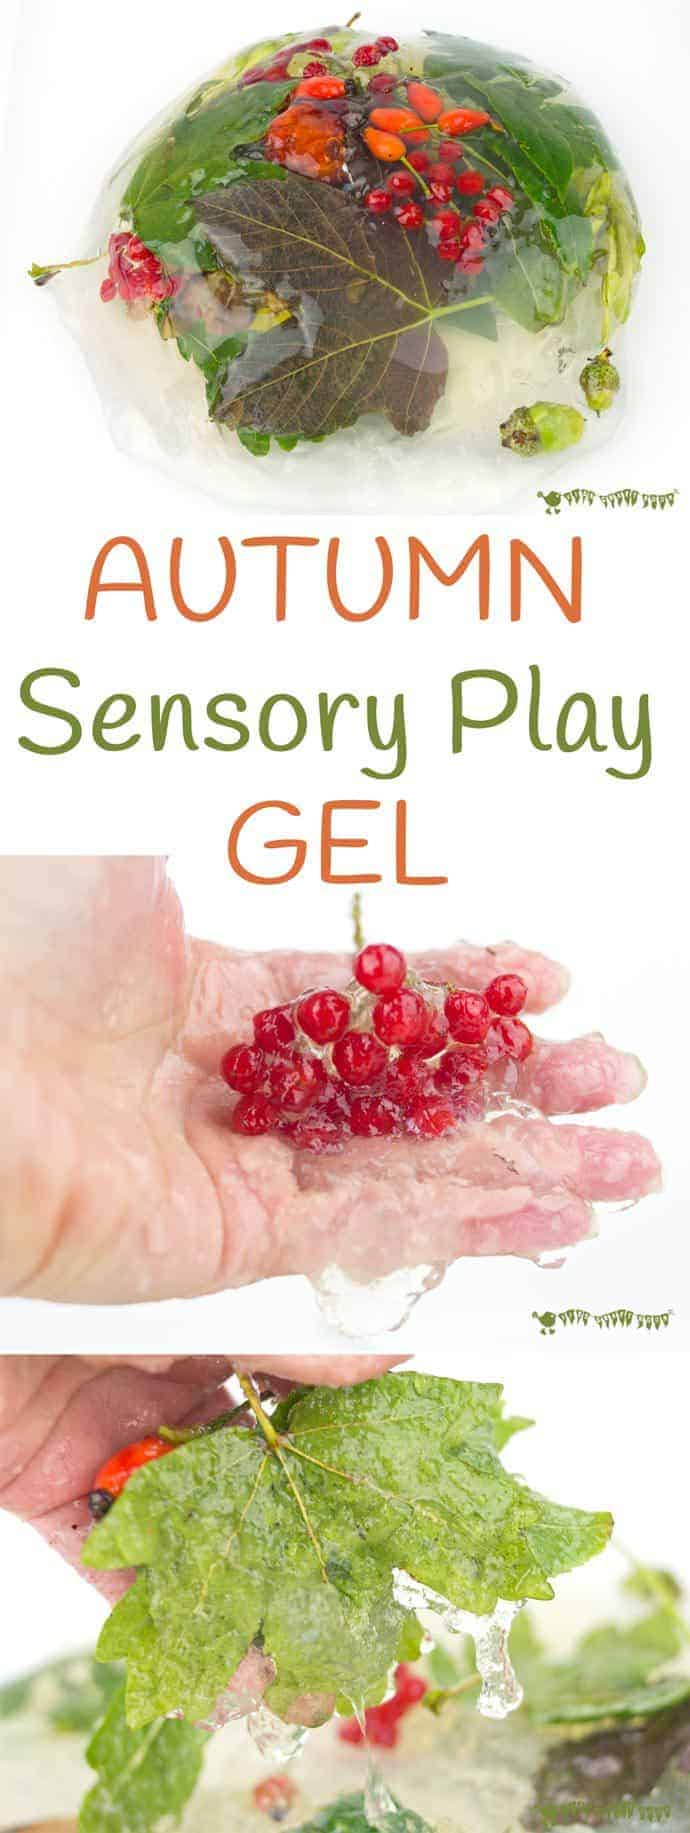 Autumn Sensory Play Gel is an irresistible hands-on play idea bringing the wonders of Nature into a squishy, squashy textural delight kids LOVE to explore.